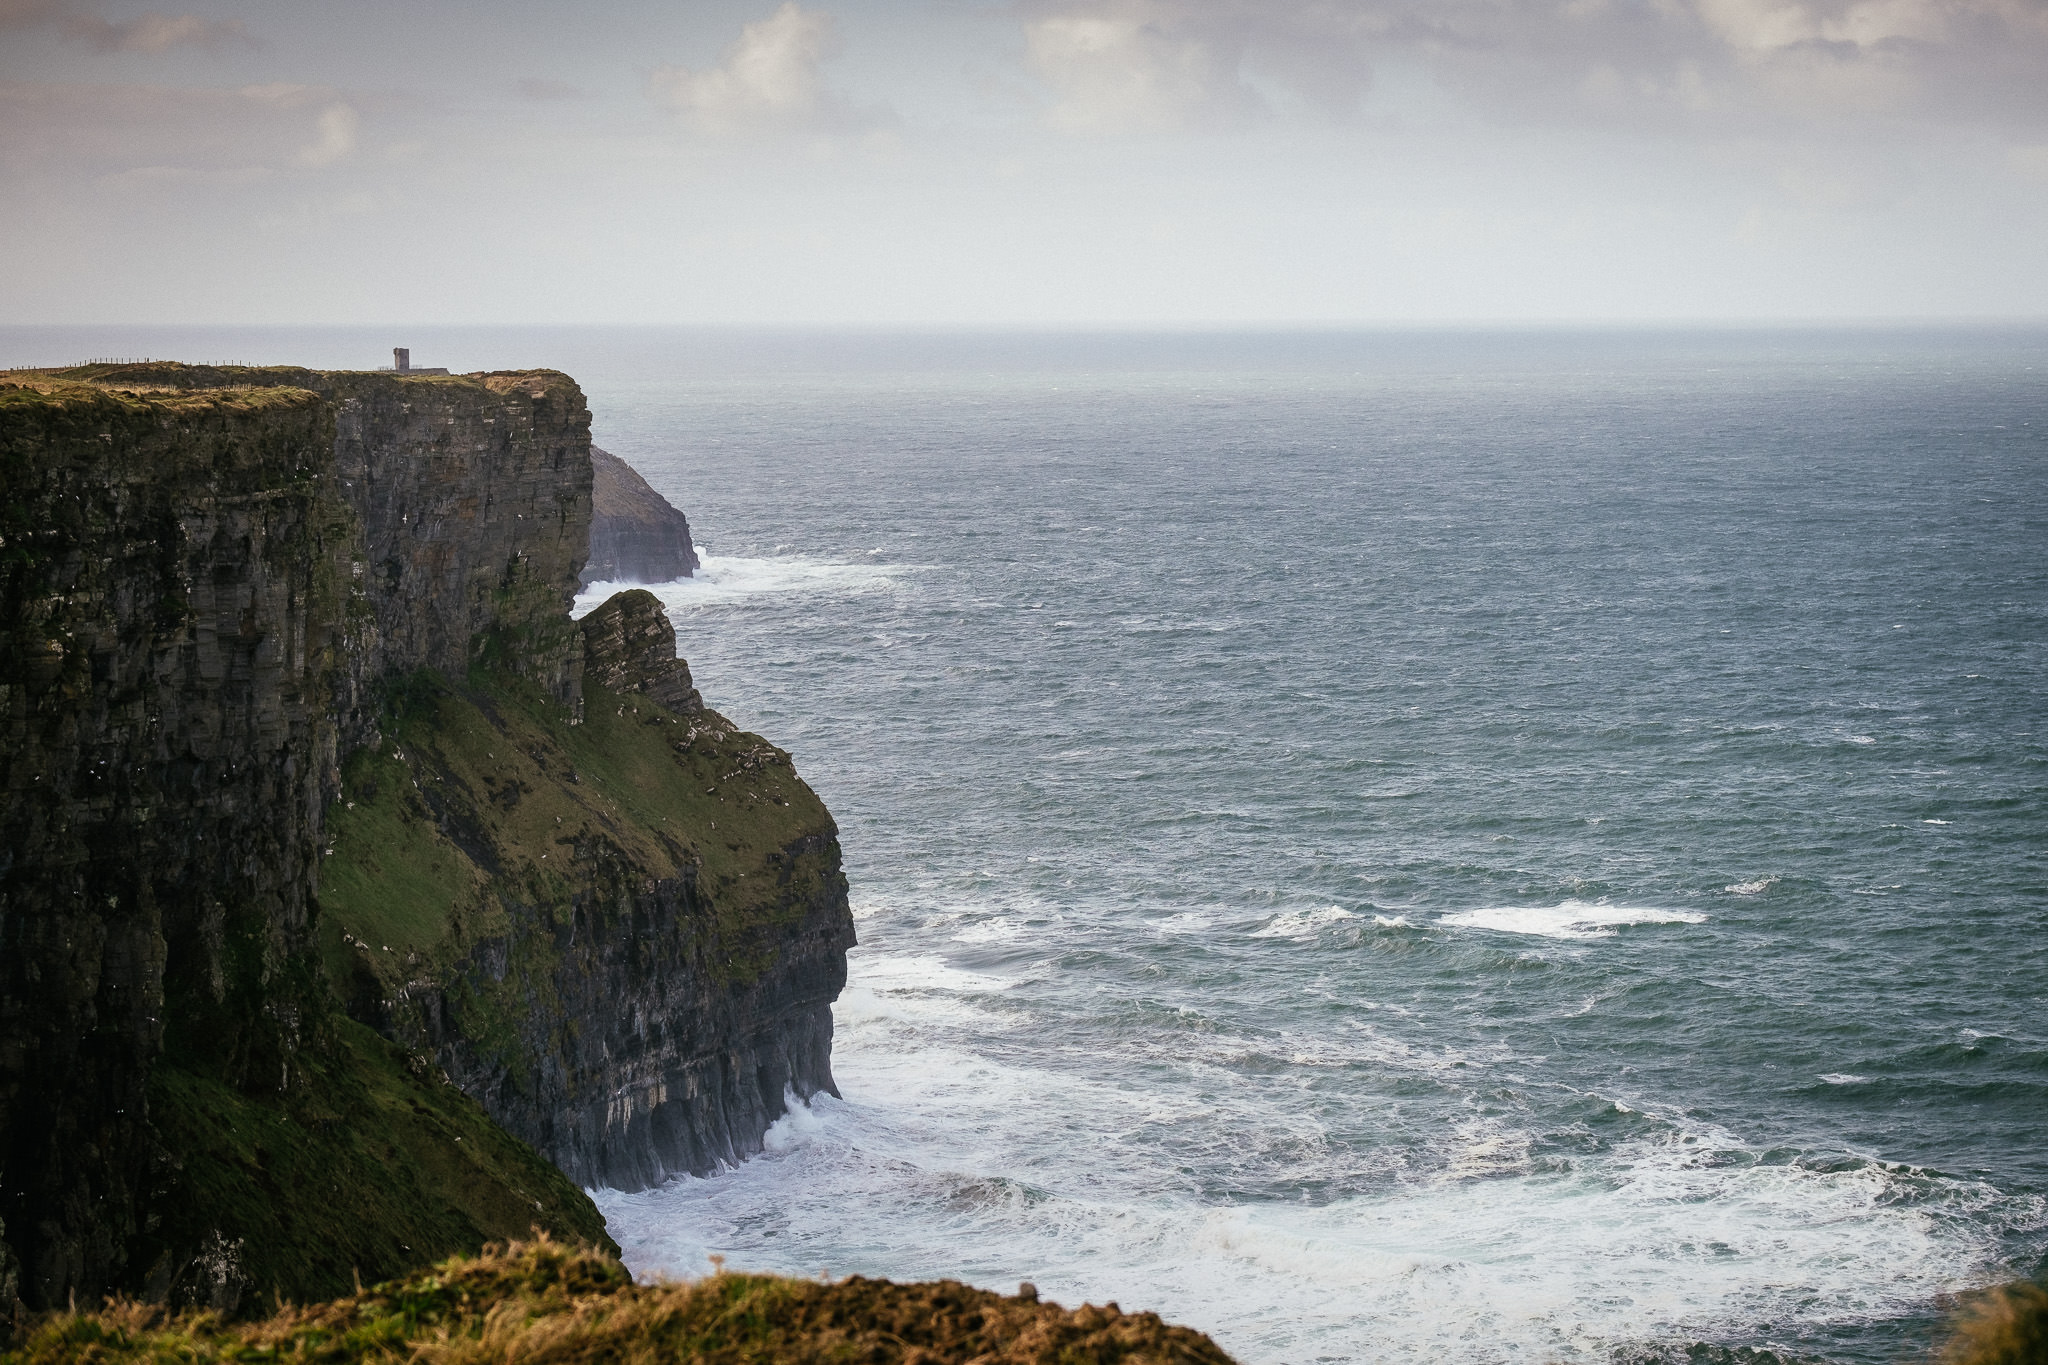 sea at the Cliffs of Moher Ireland